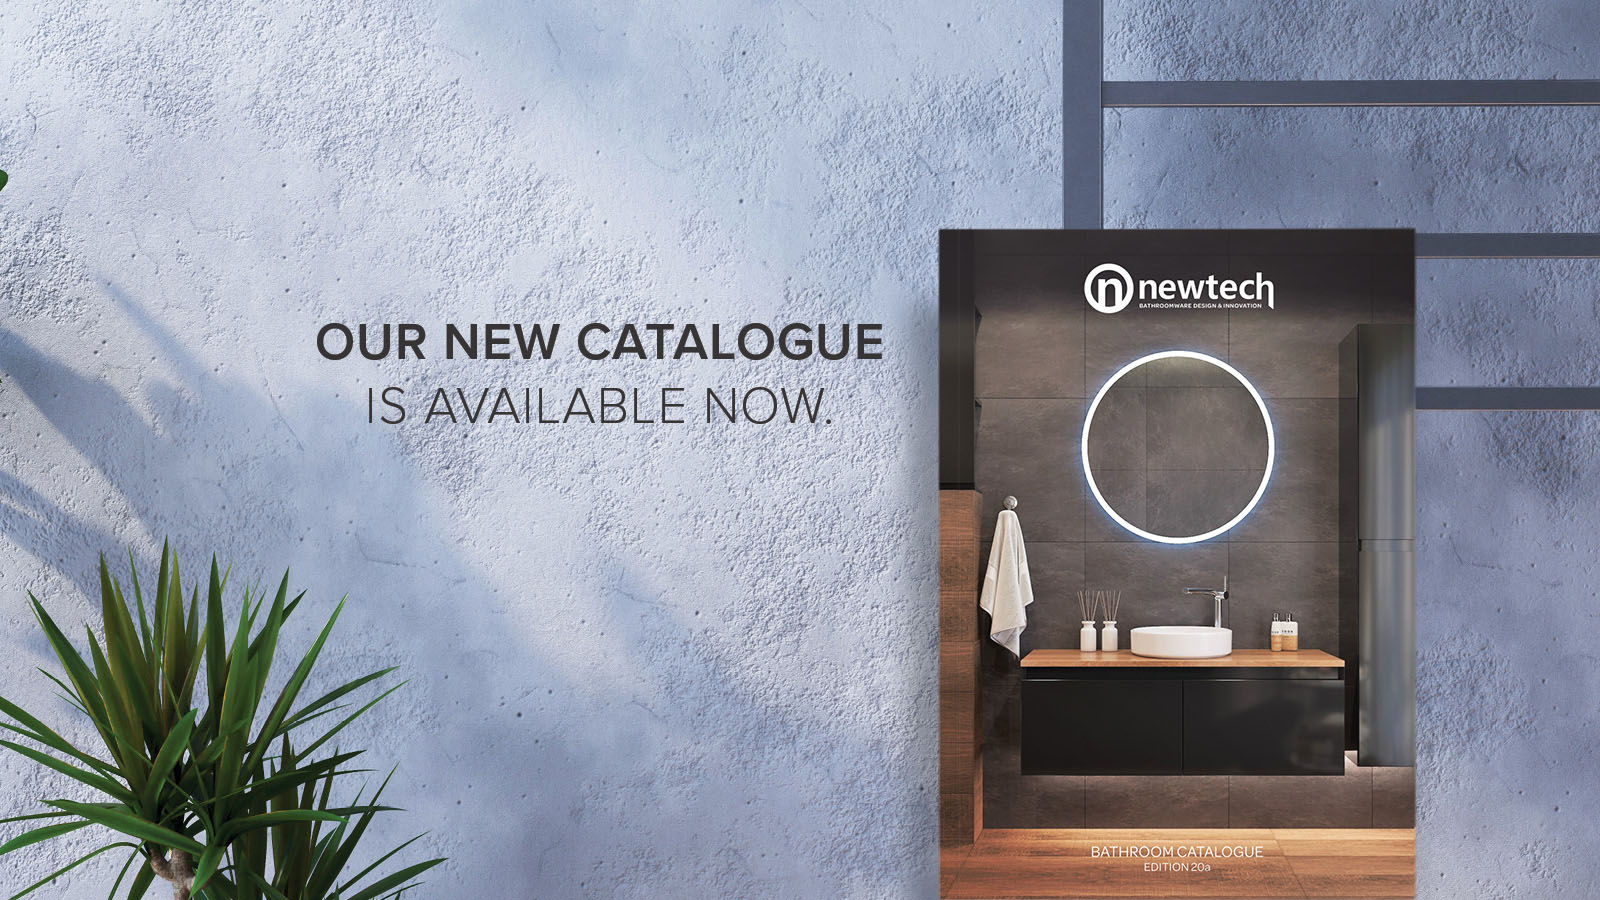 Bathroom Product Catalogue available now